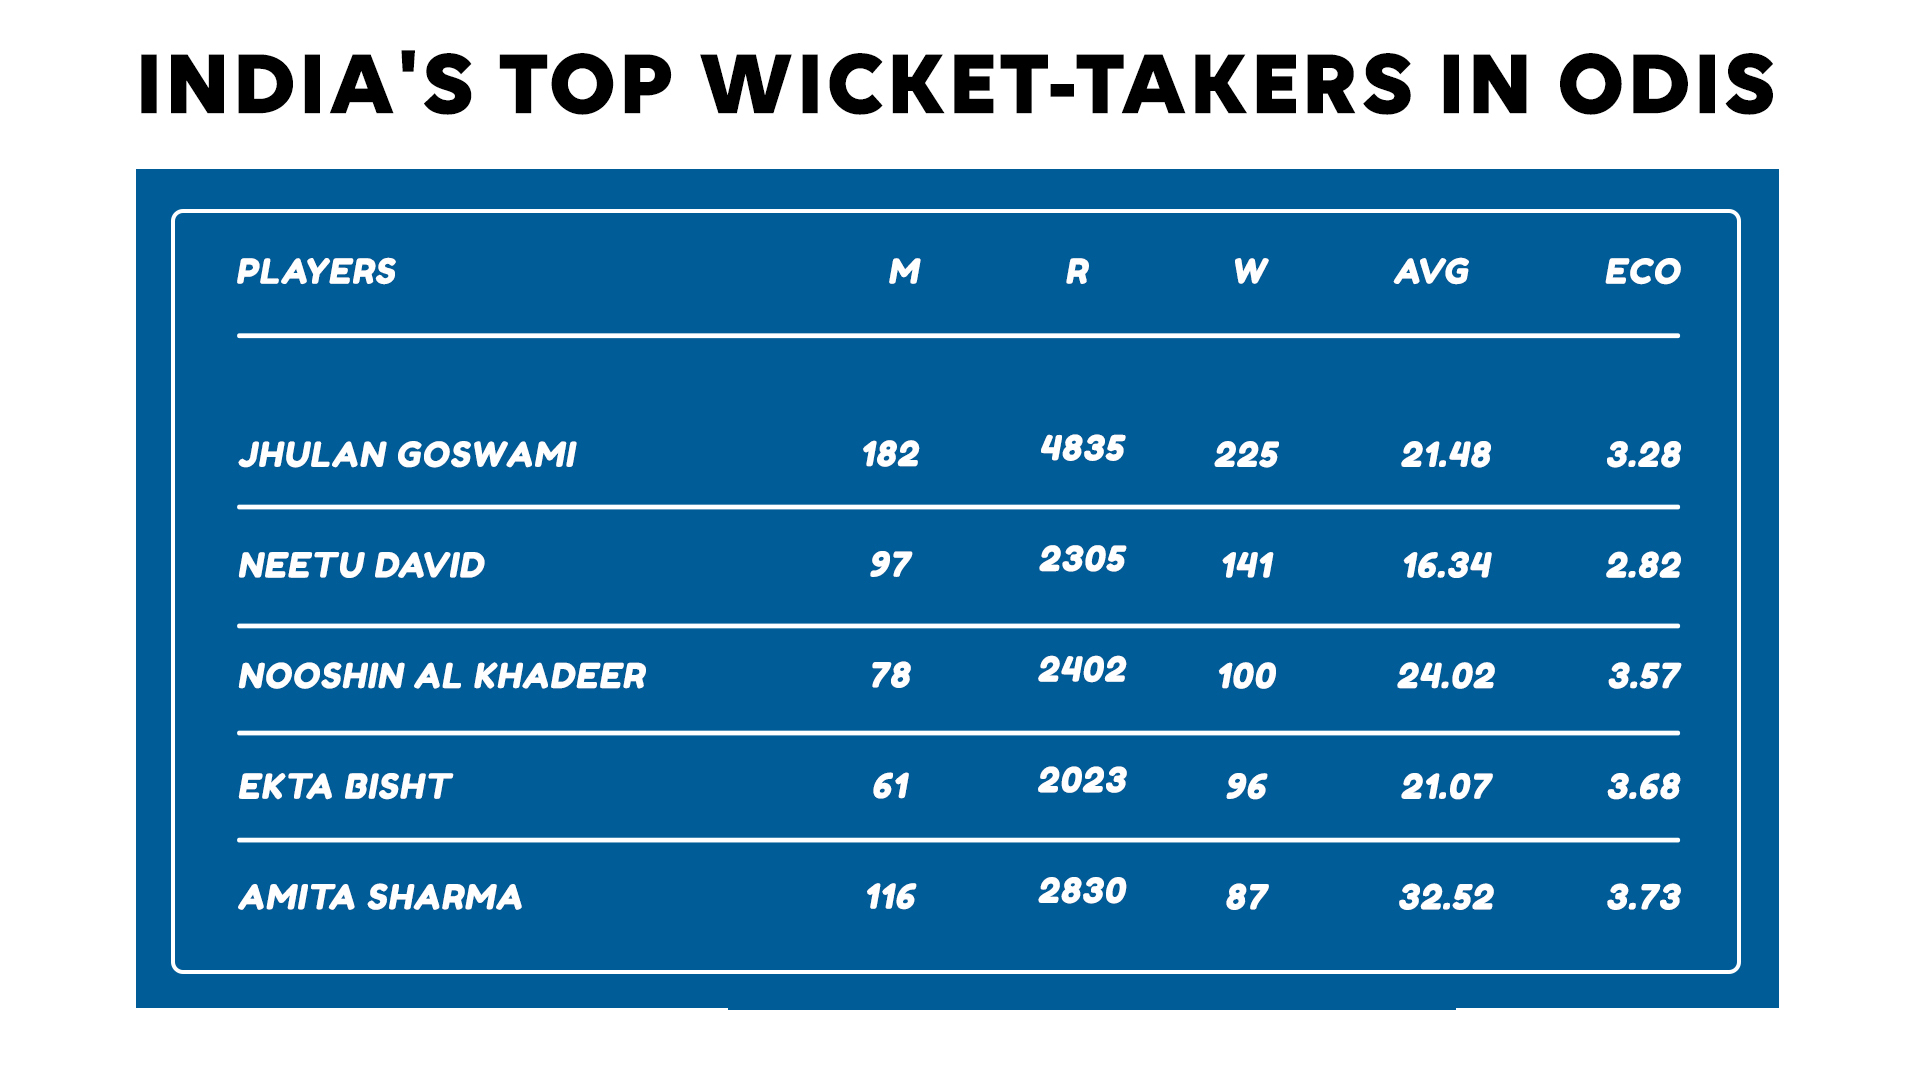 India's top ODI wicket-takers